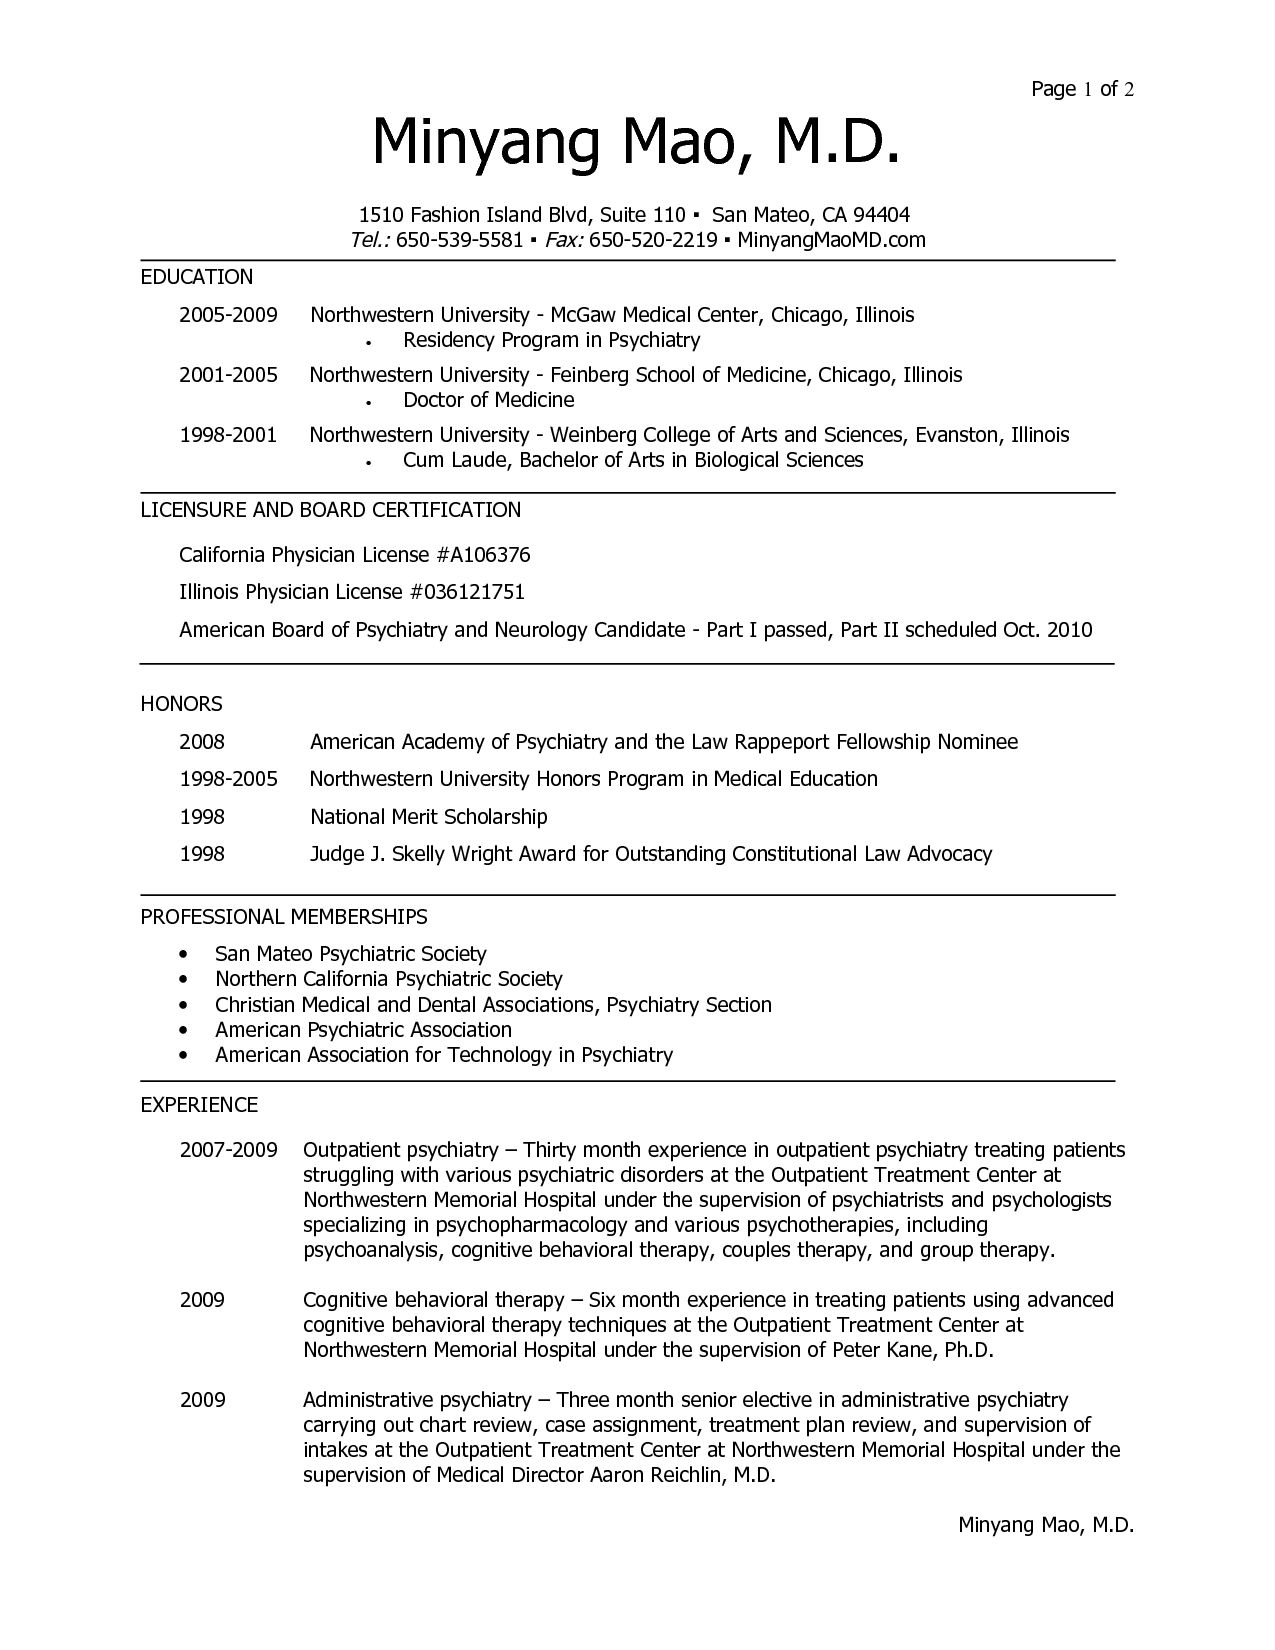 Academic Resume Template Medical School Resume Template Medical School Resume Example